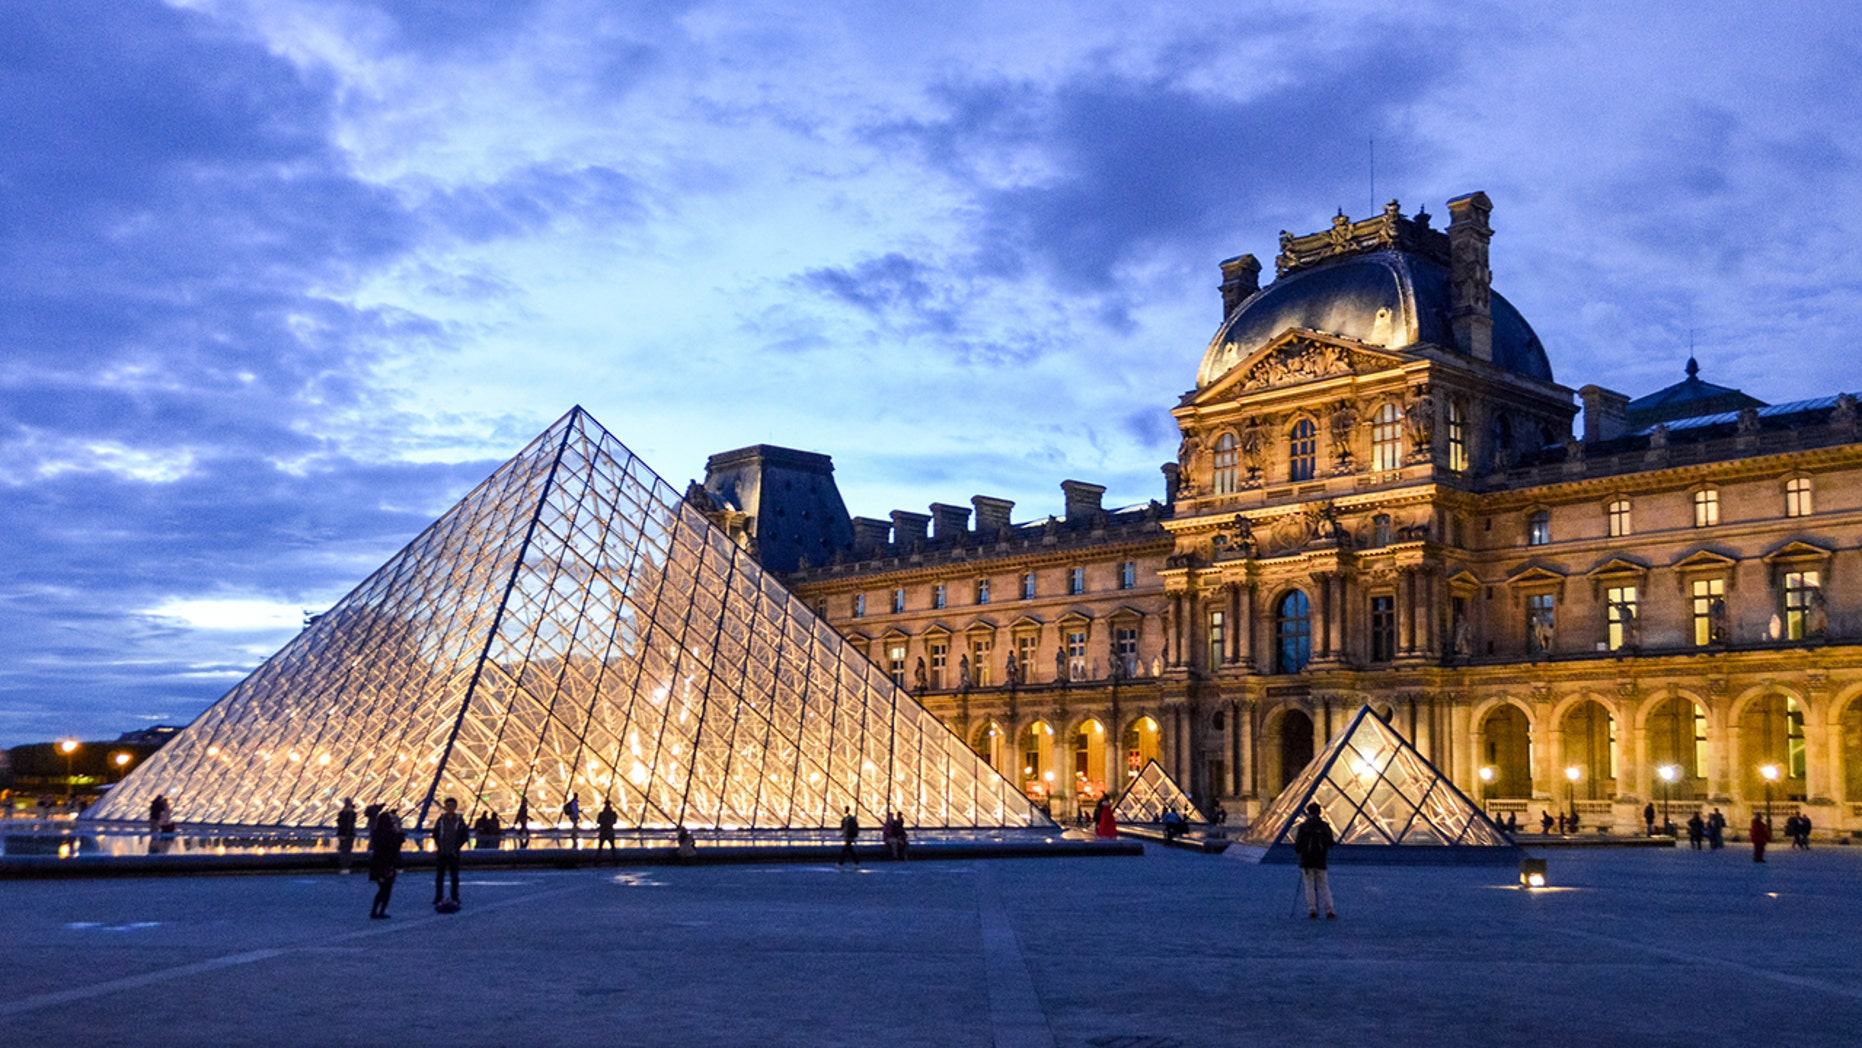 Louvre Museum sleepover? Airbnb contest gives winner rare